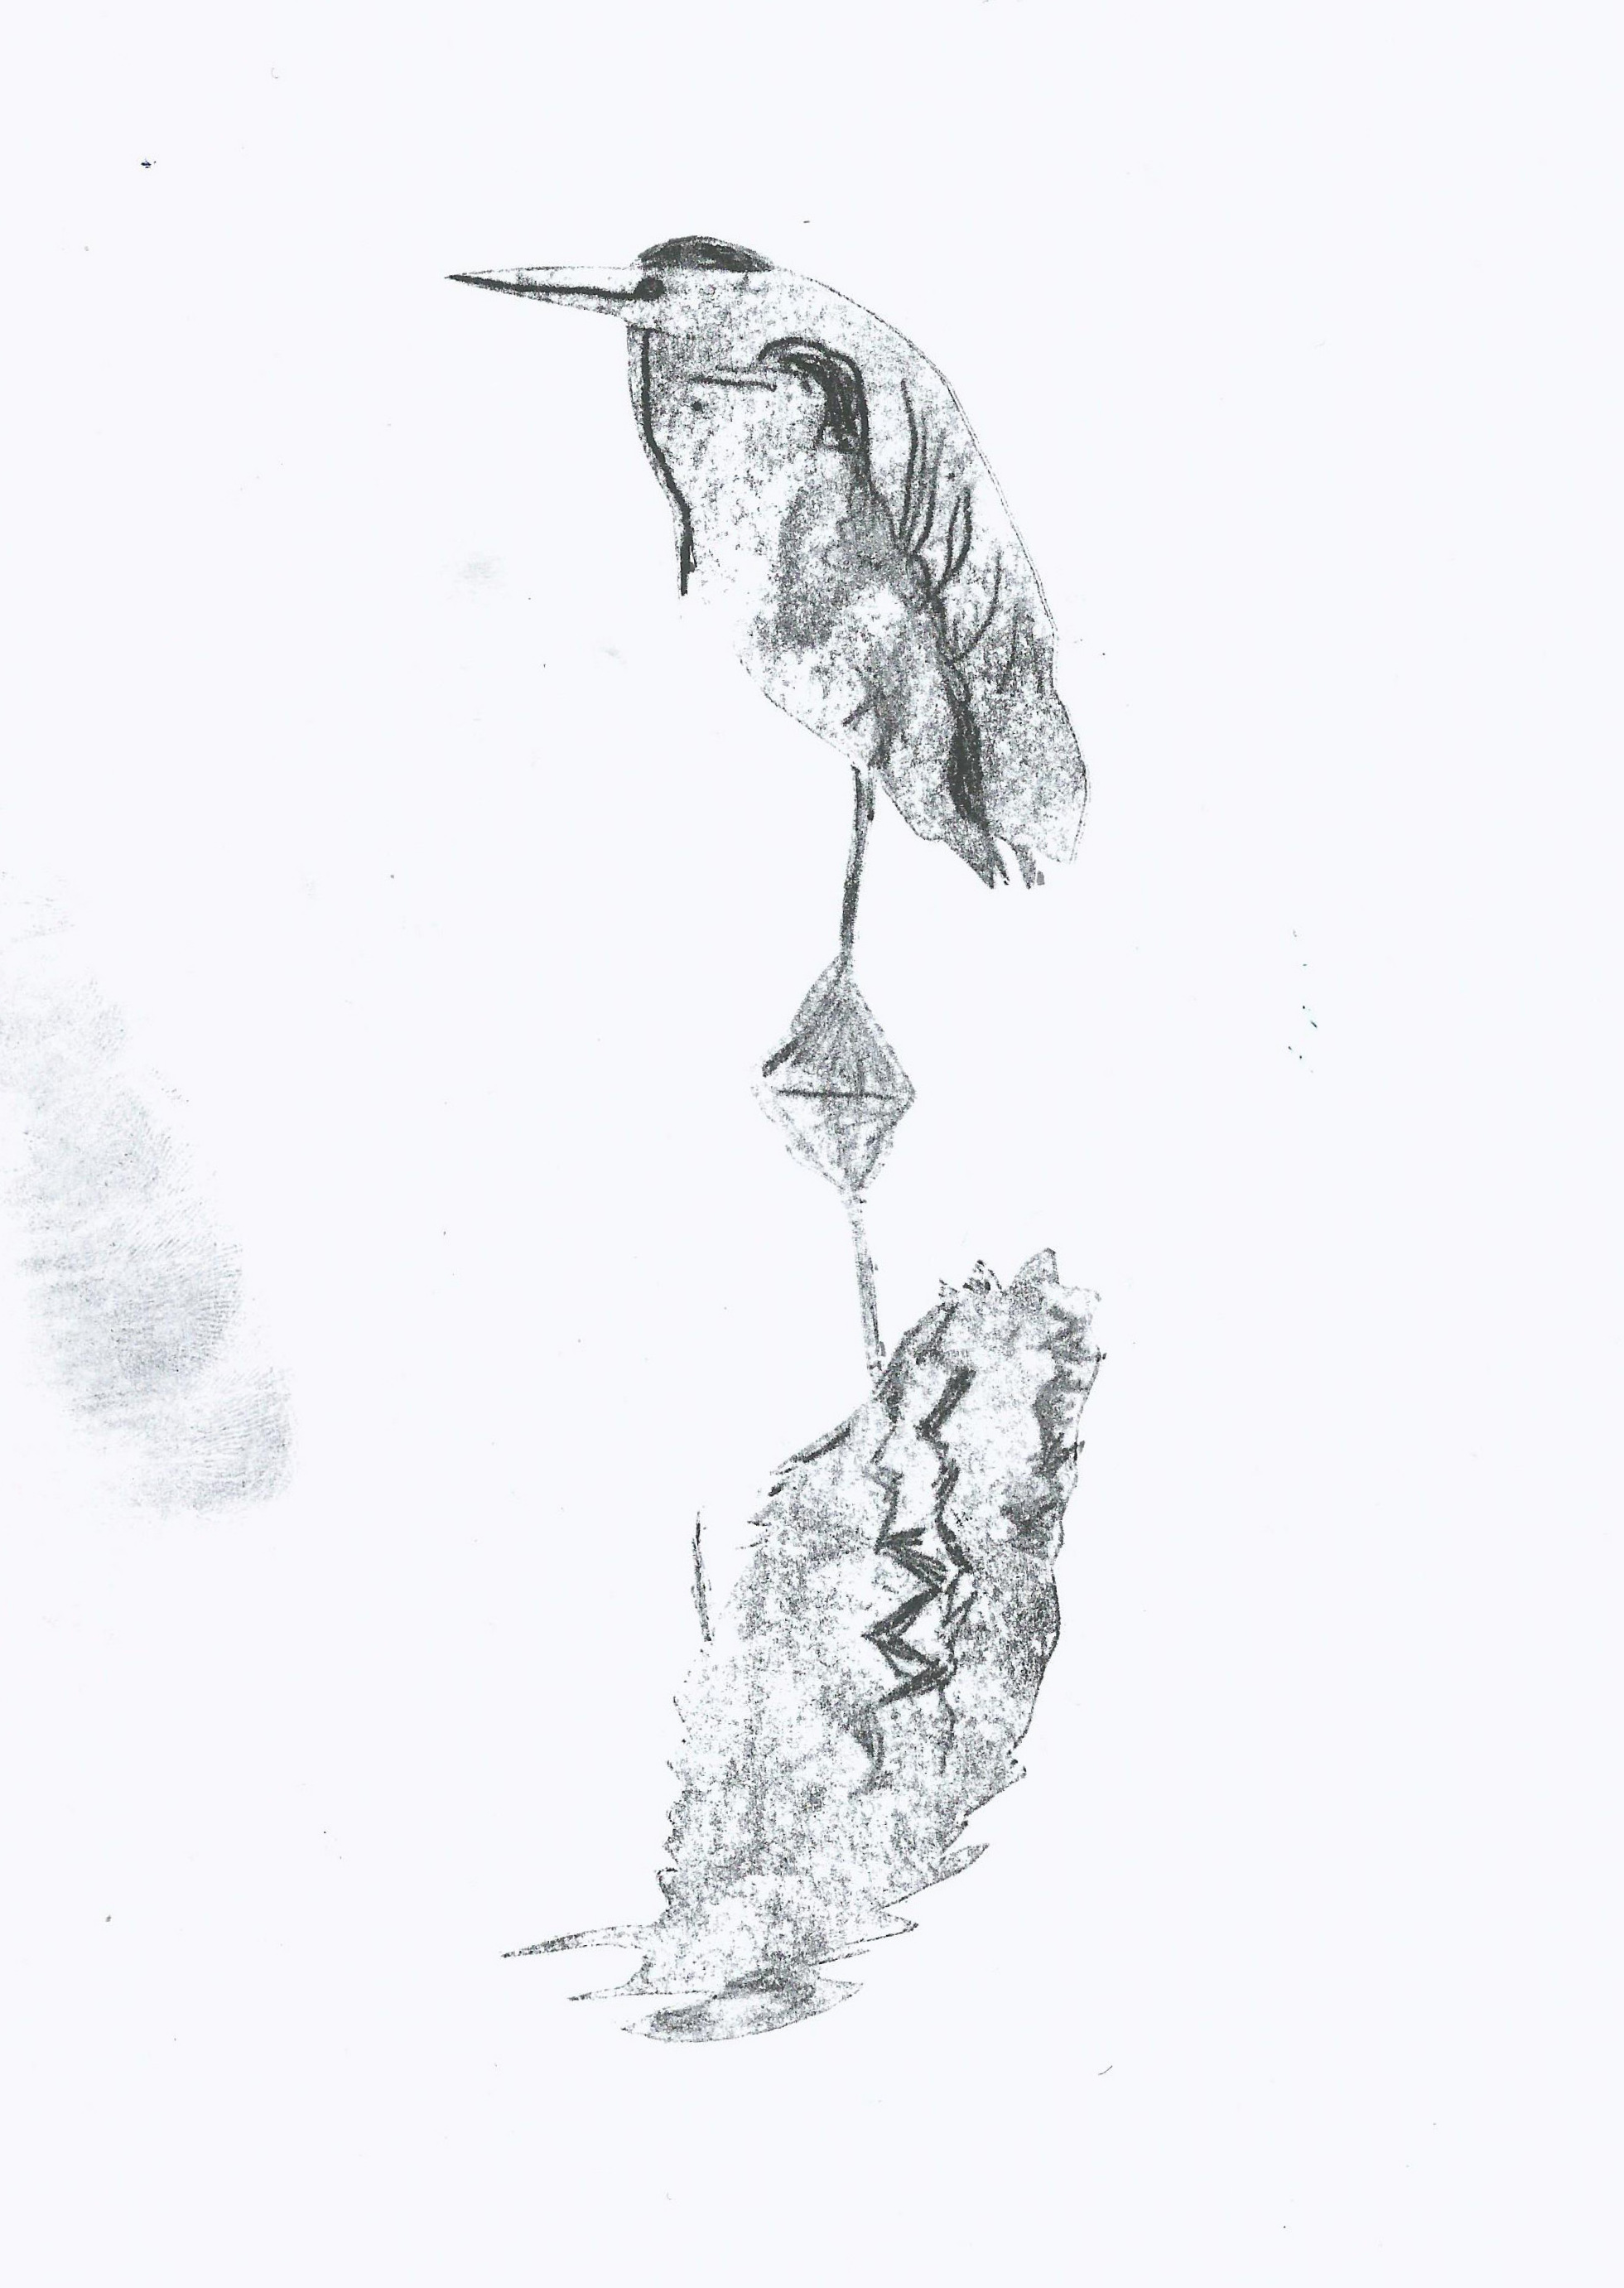 A hand drawn illustration of a bird done with pencil